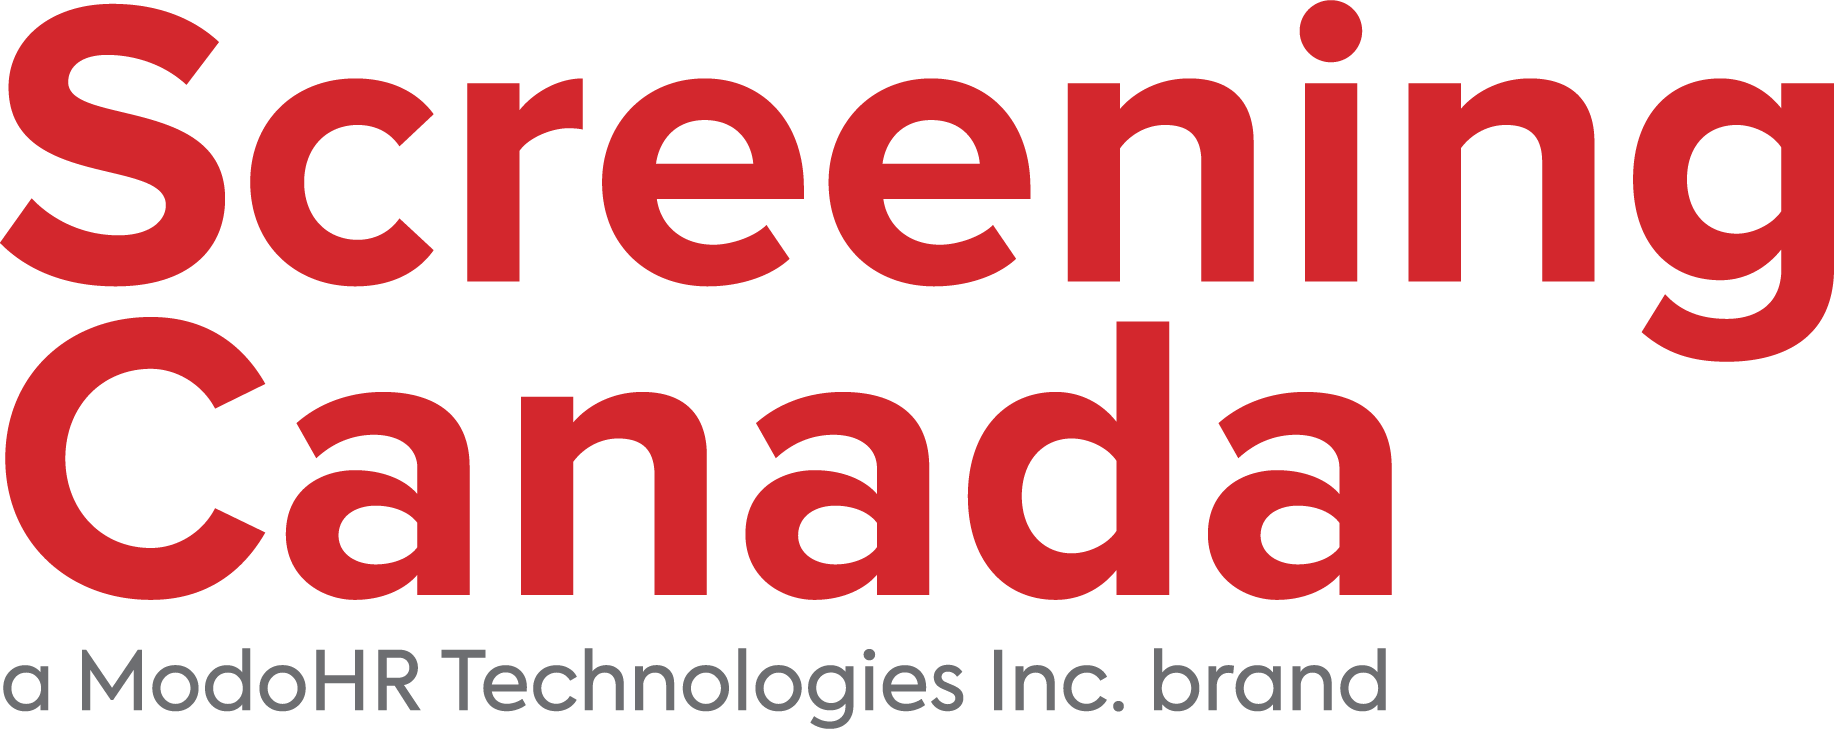 ScreeningCanada